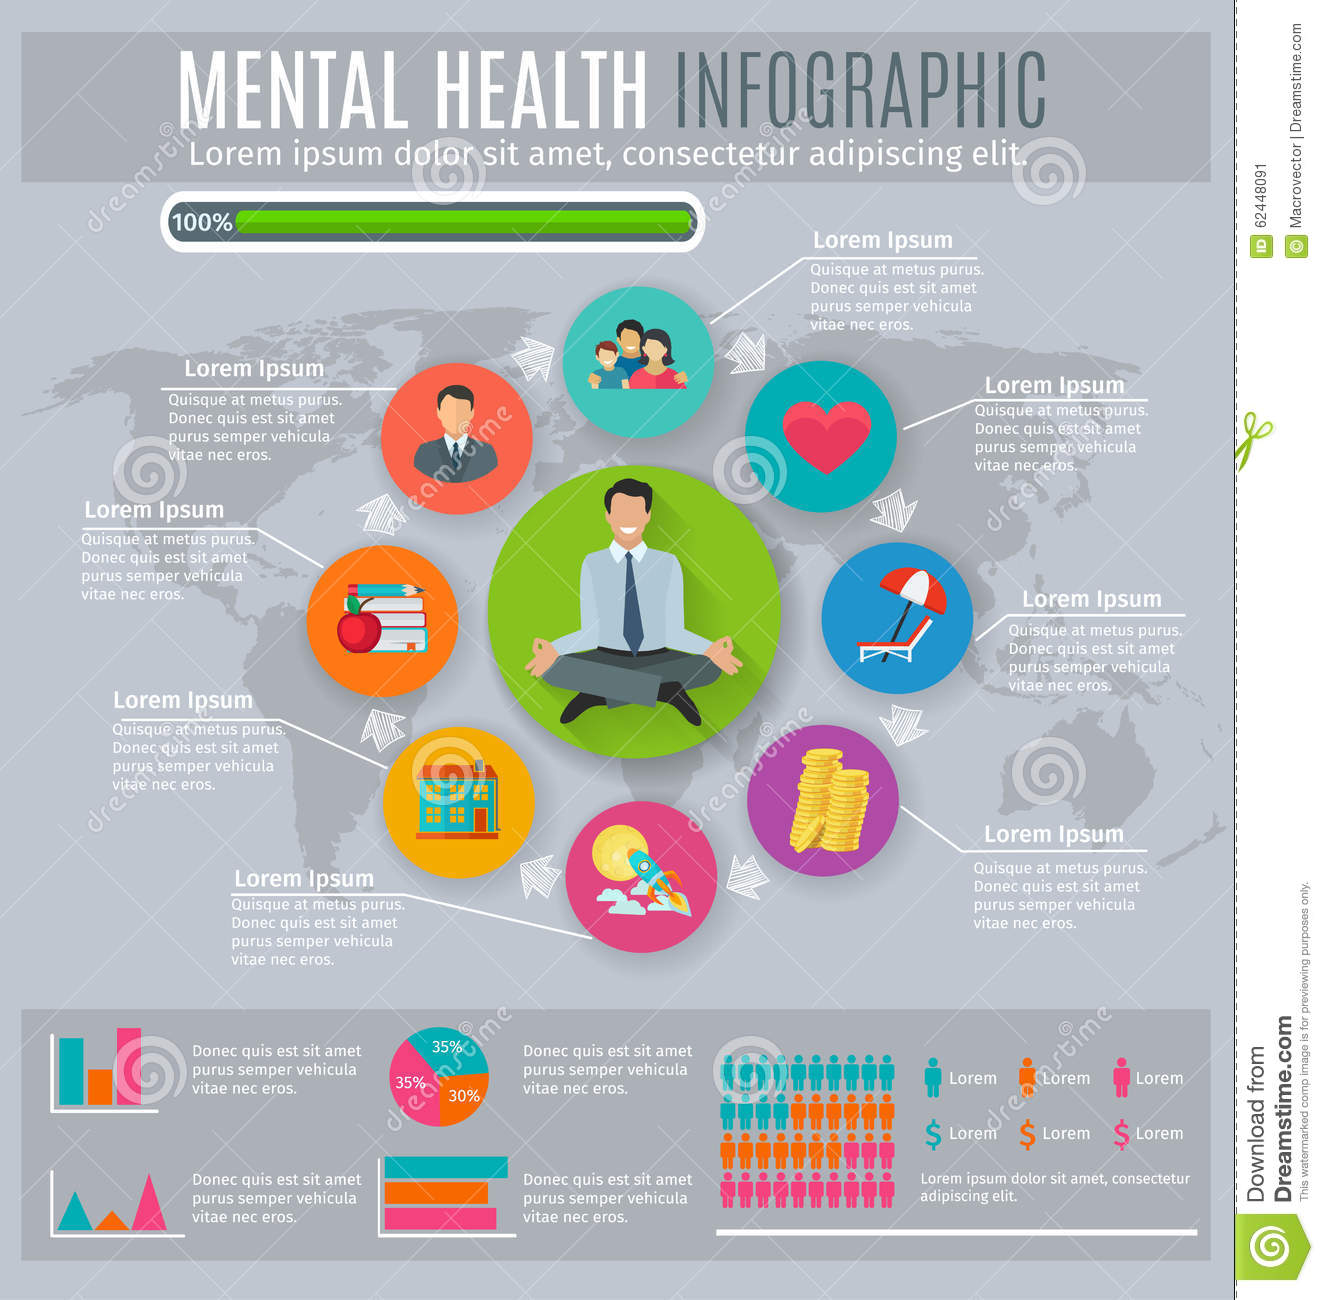 Mental Health Infographic Presentation Design Stock Vector